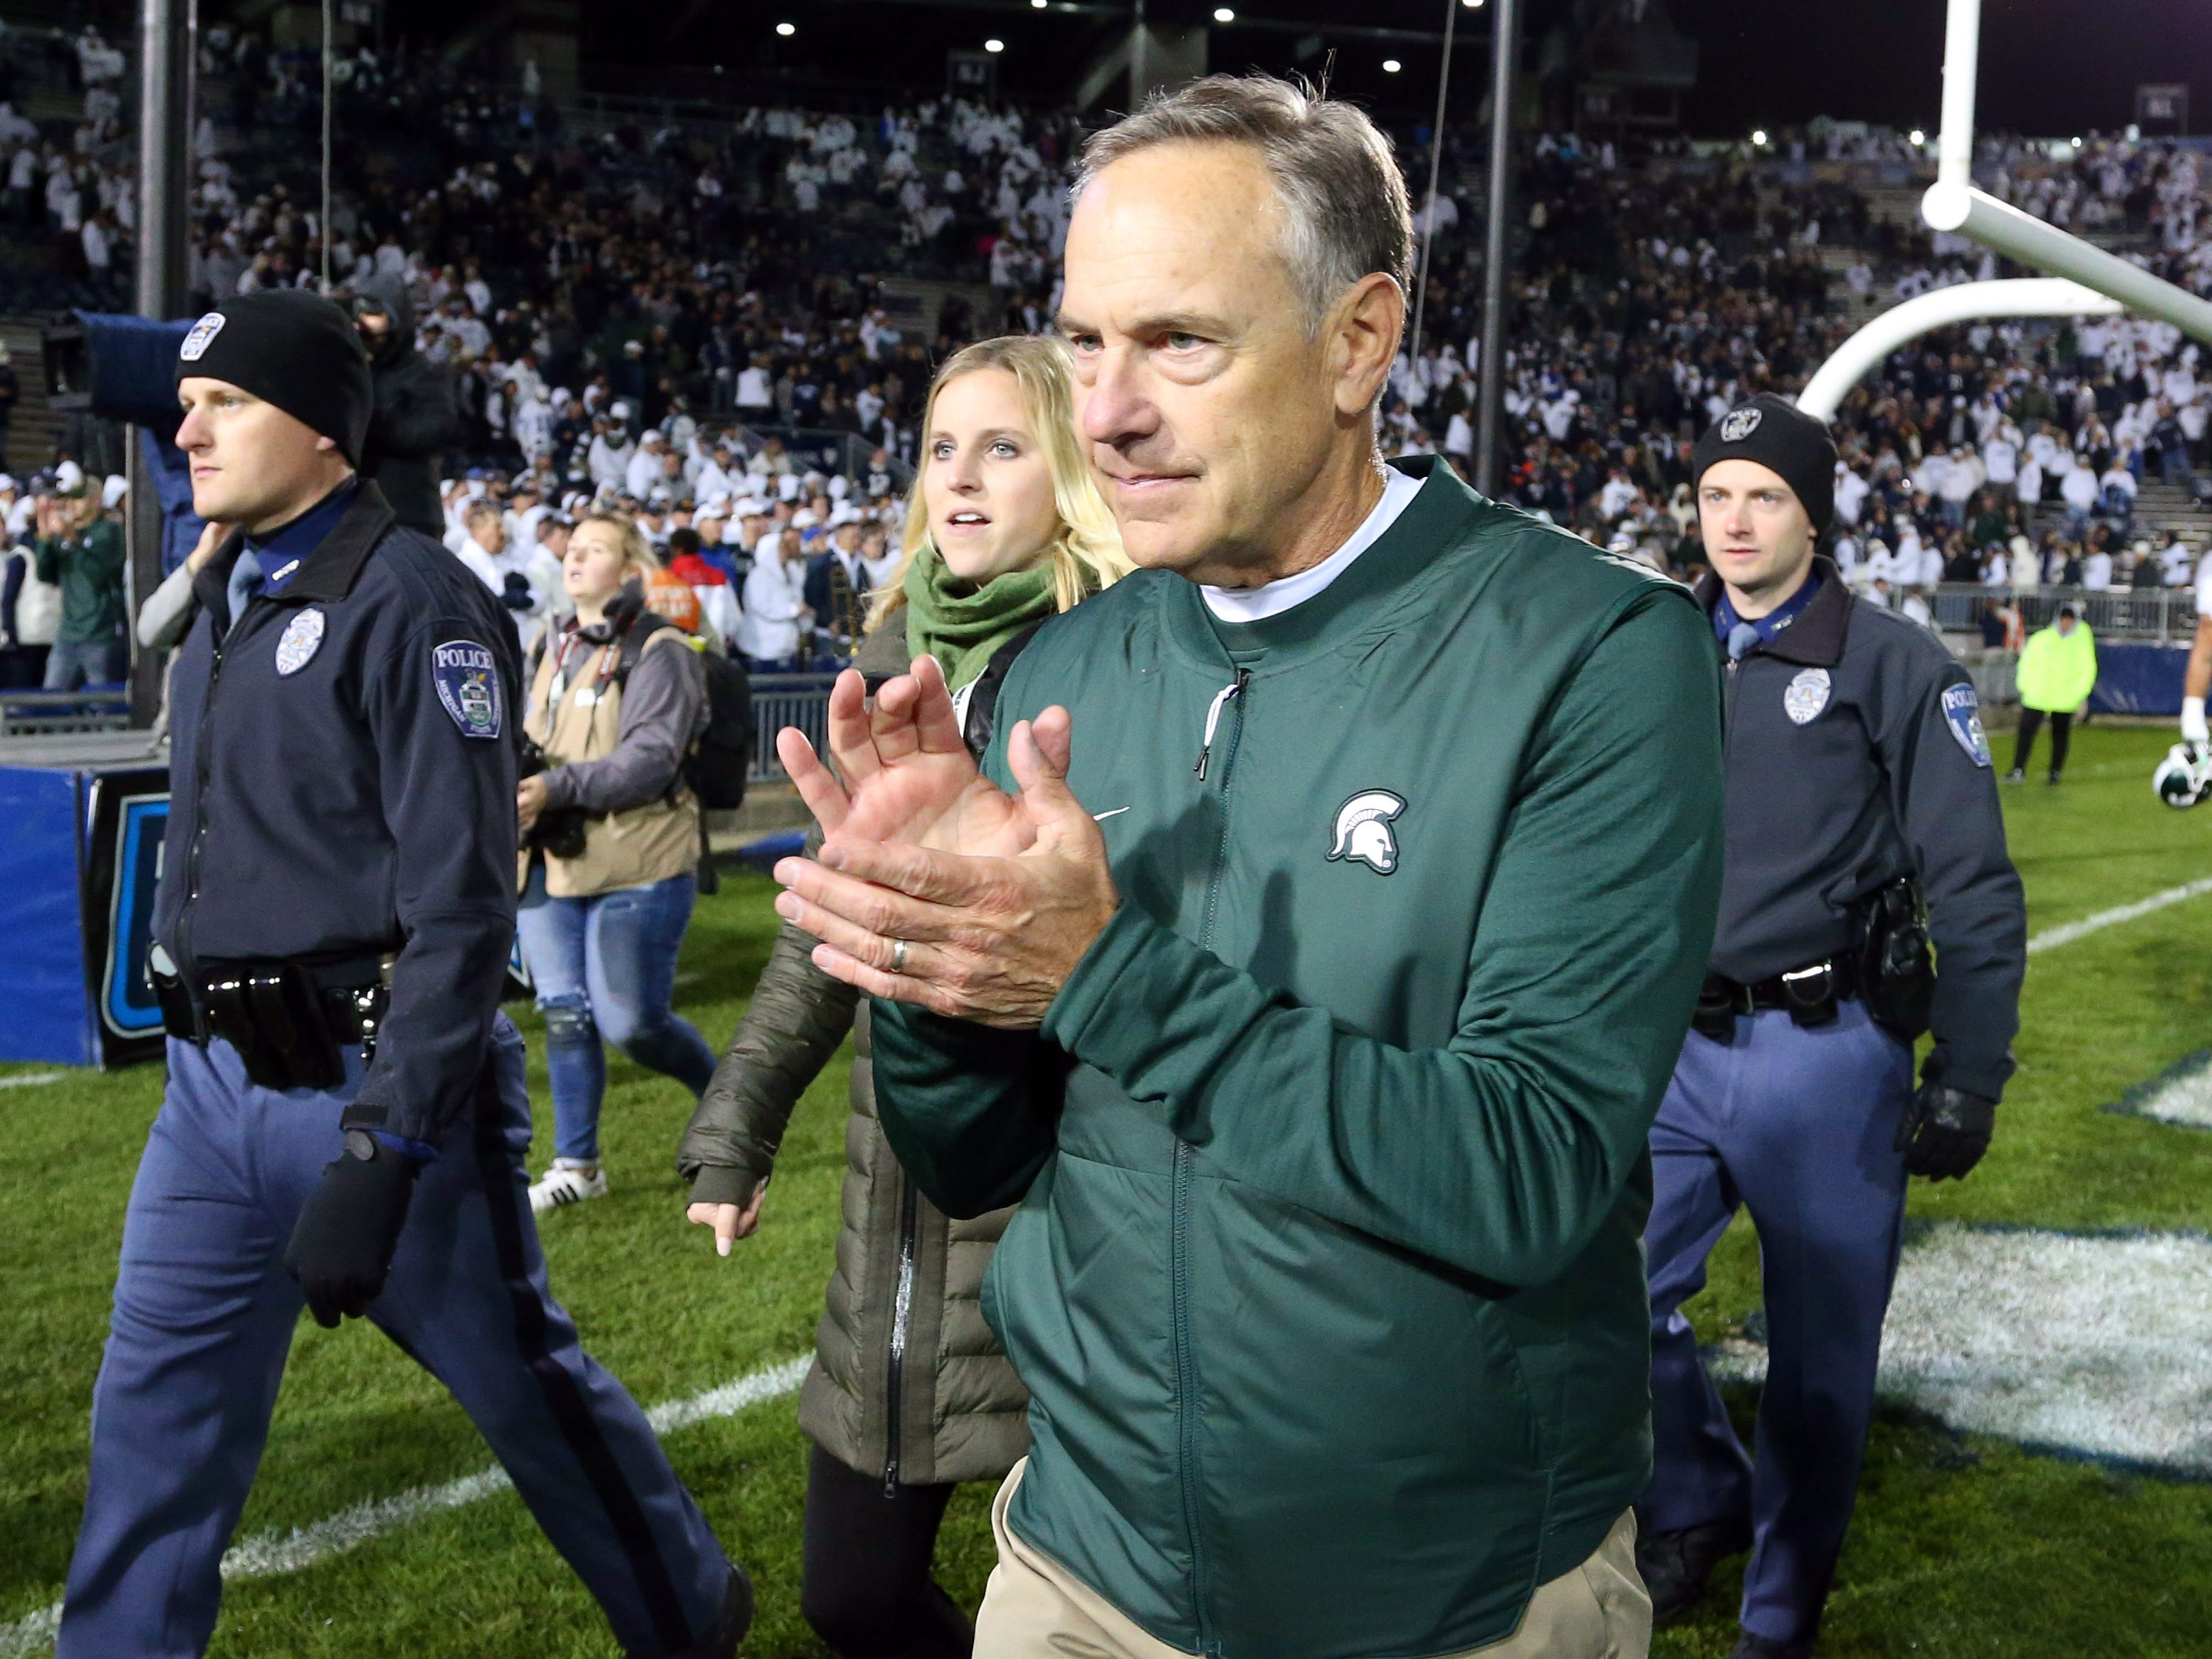 Michigan State Spartans head coach Mark Dantonio reacts while walking of the field following the game against the Penn State Nittany Lions at Beaver Stadium.